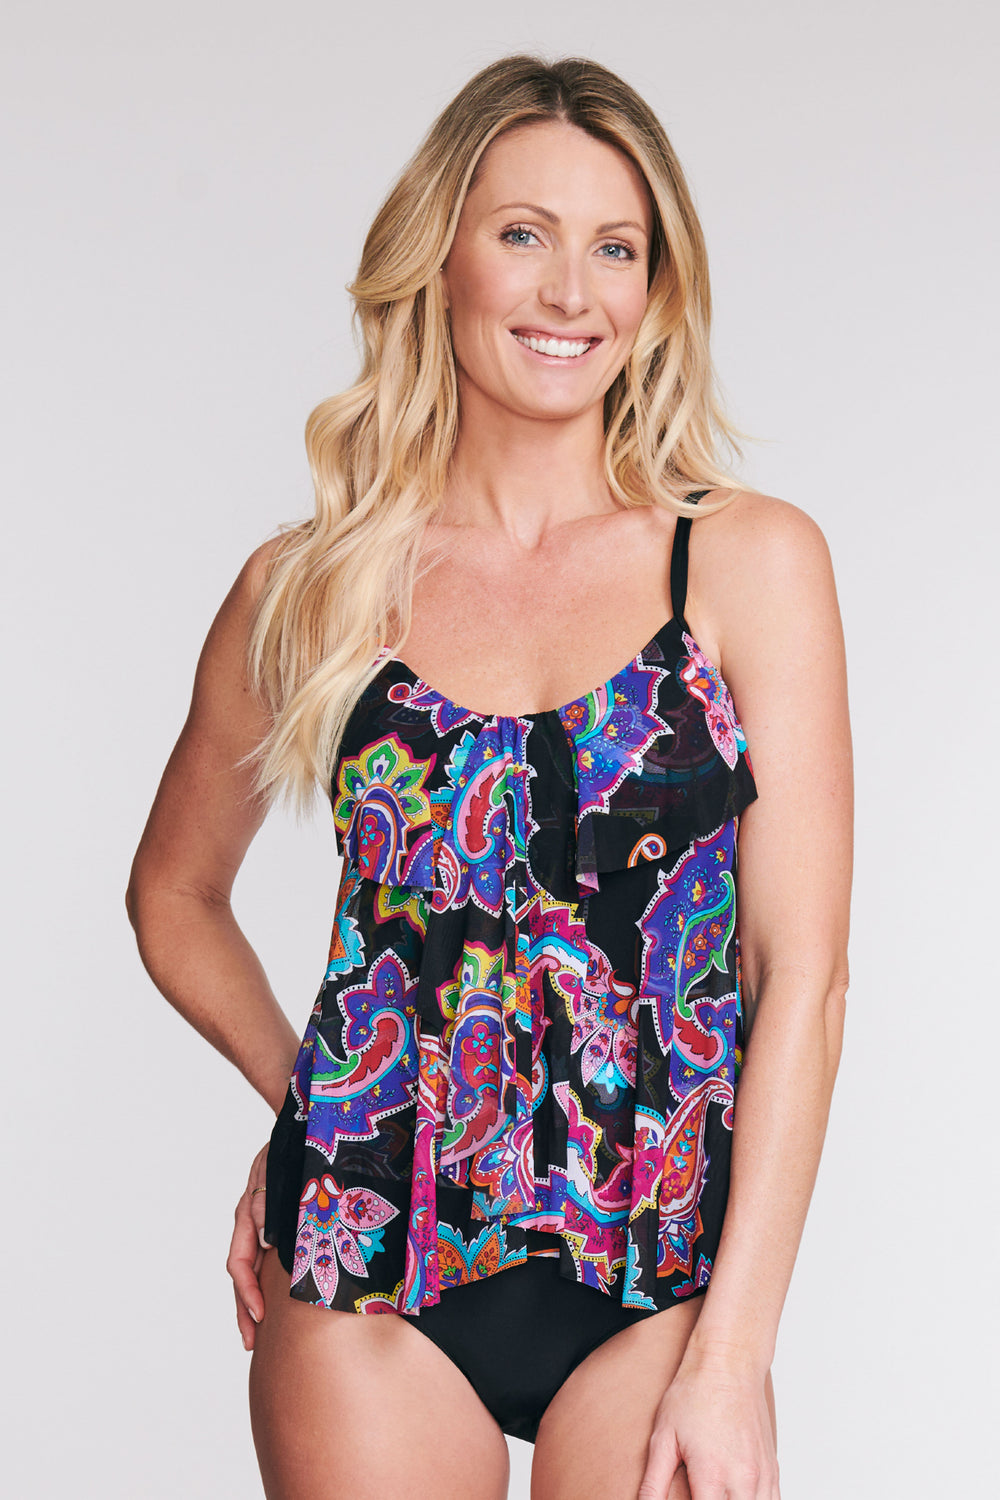 DRAPED TIER MESH TANKINI IN PAISLEY BLOSSOM BLACK BY MAZU SWIM